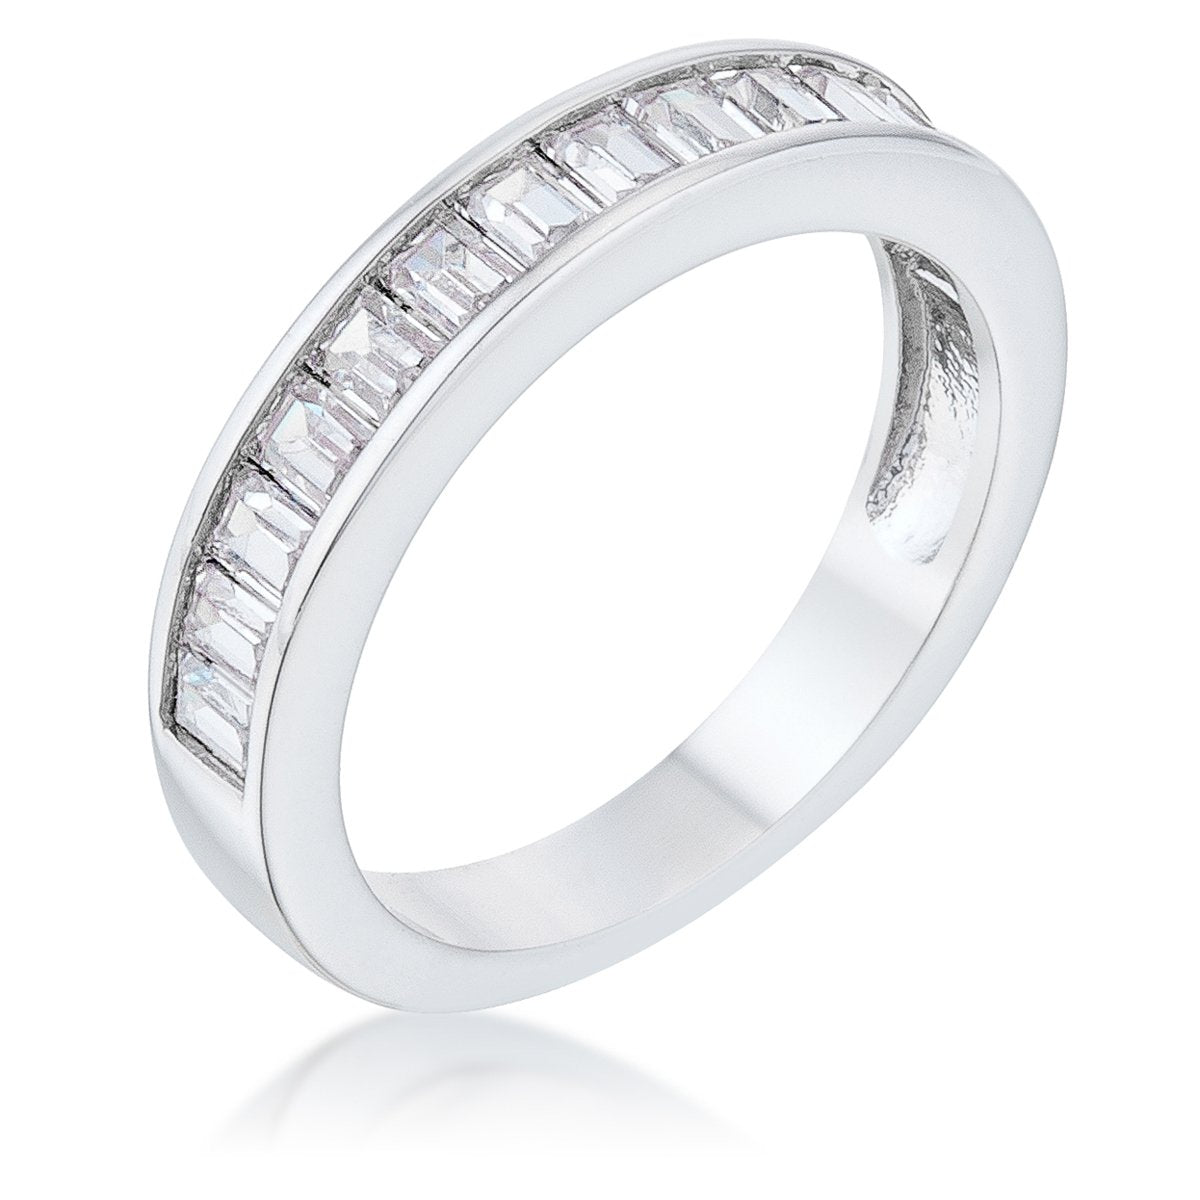 Baguette Cut CZ Rhodium Wedding Band - Rings - KA Designs Online